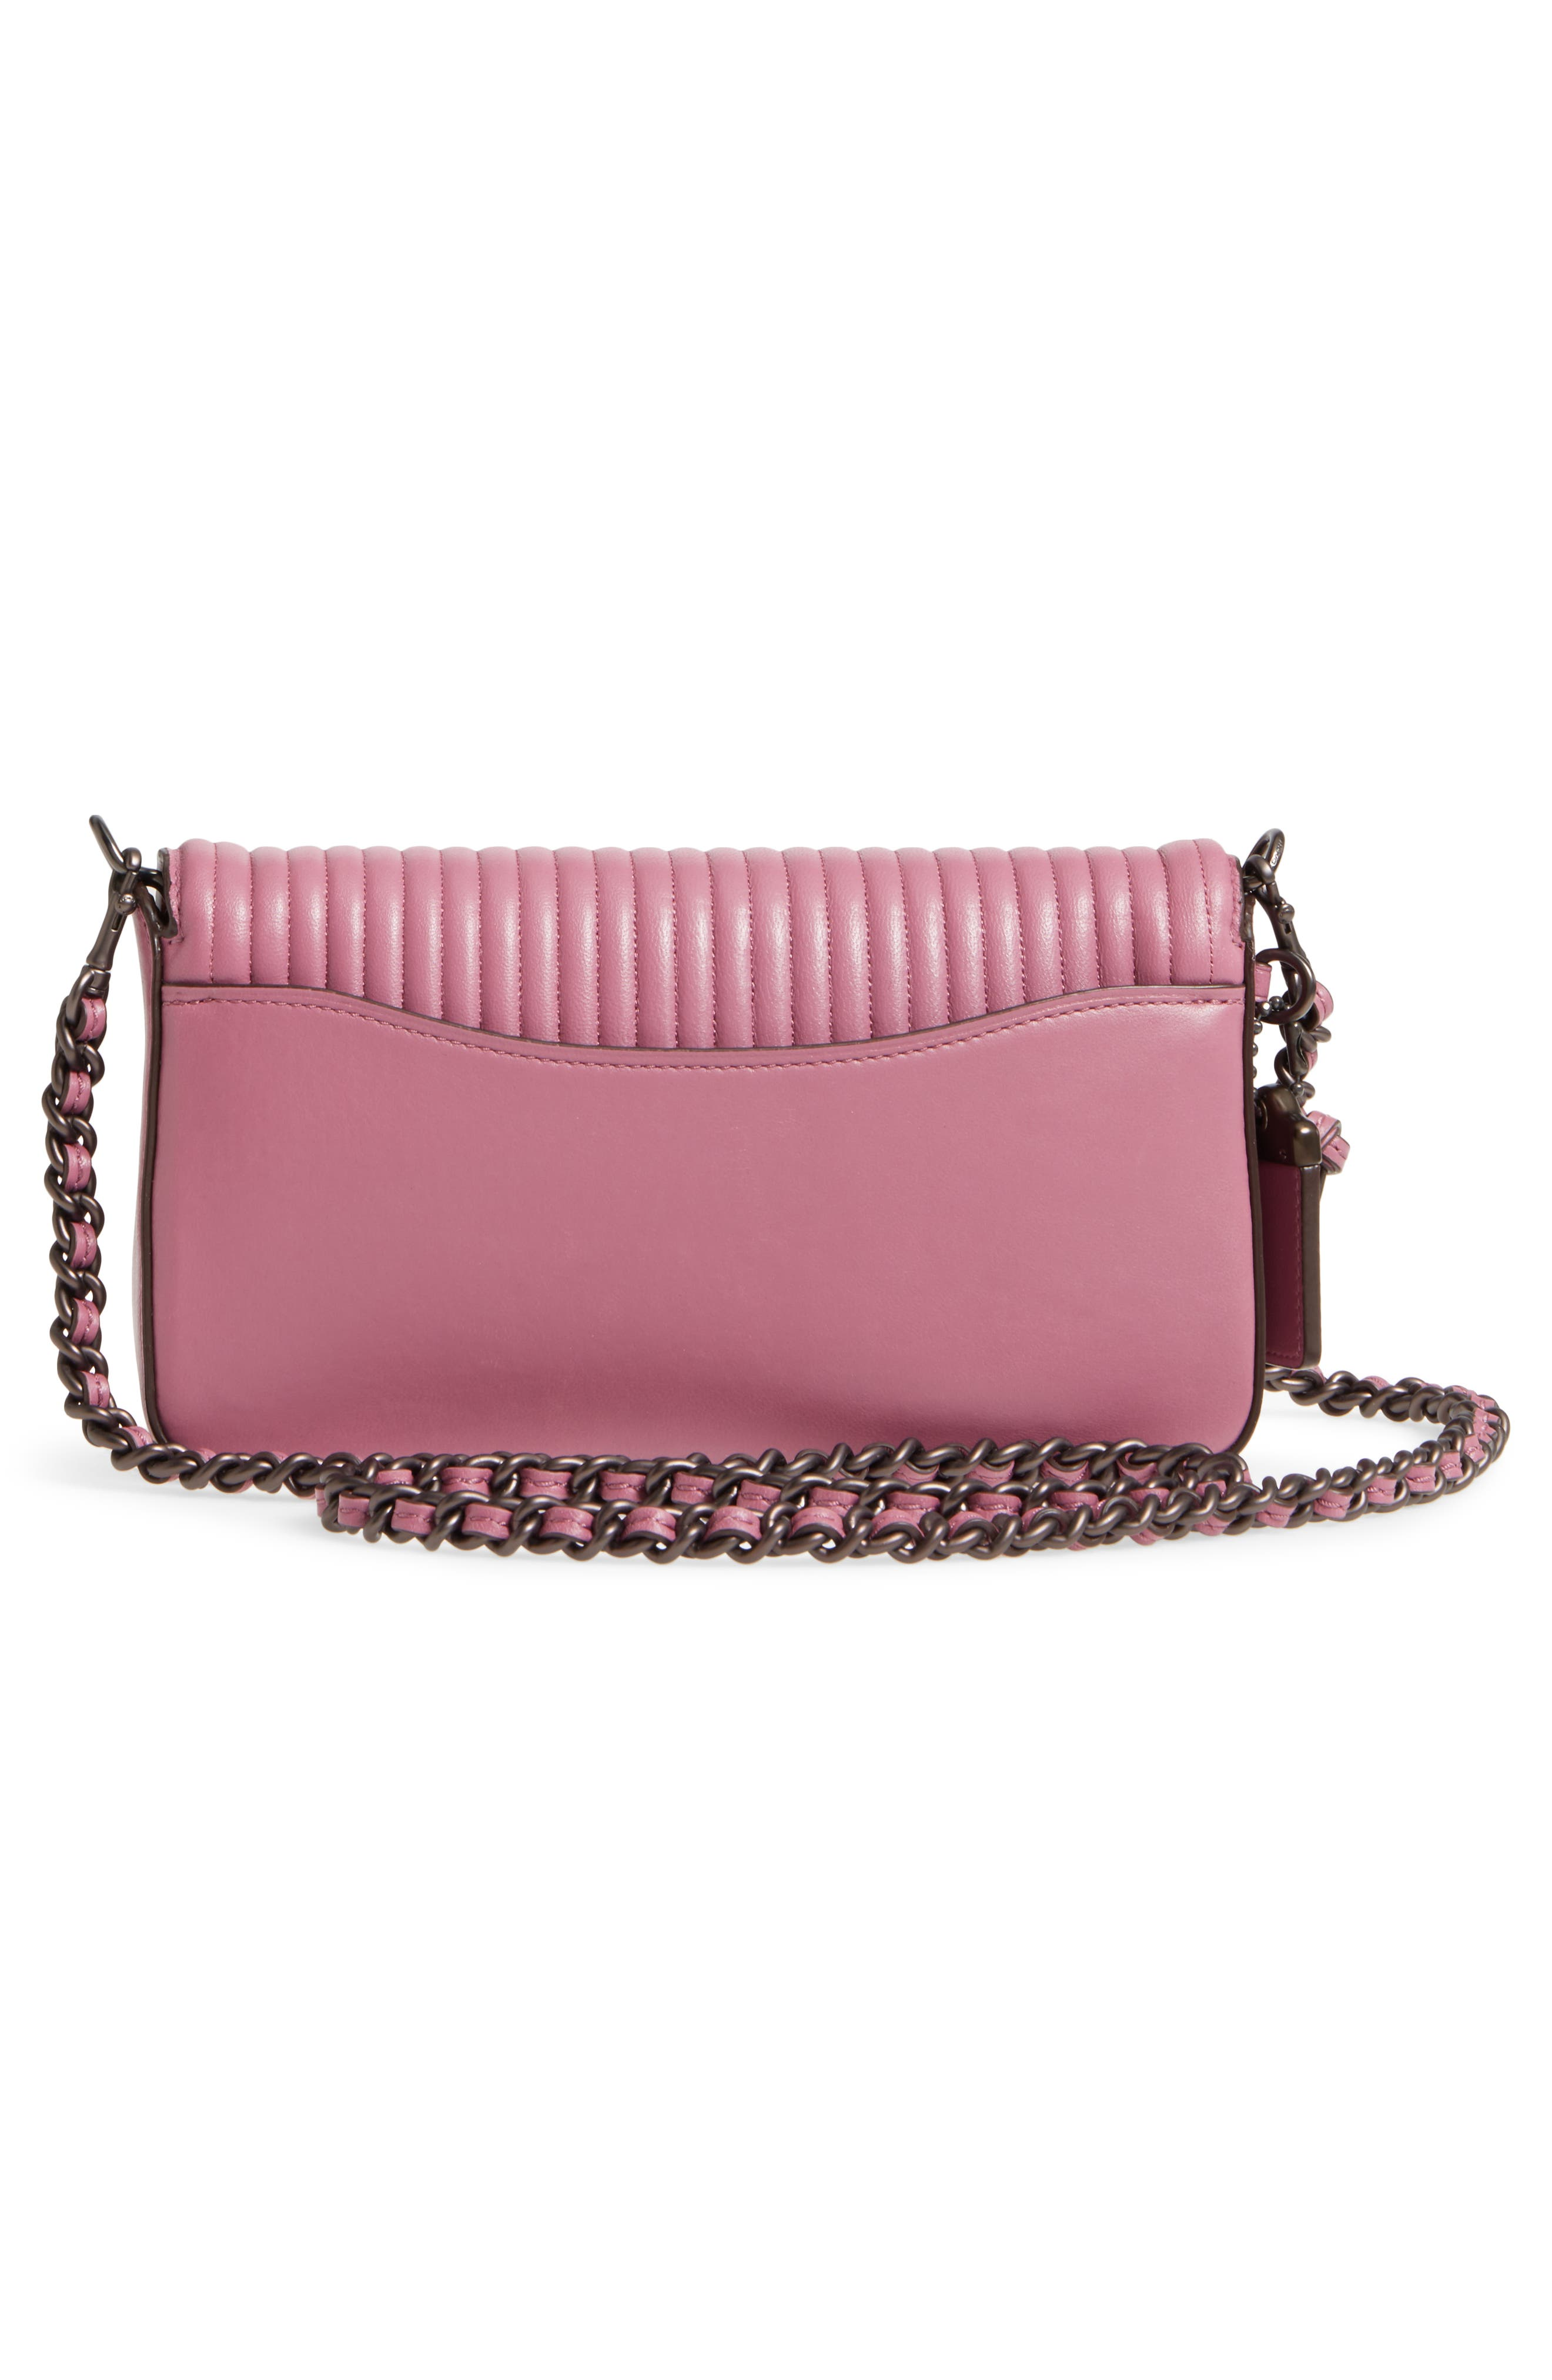 Alternate Image 3  - COACH 1941 Dinky Quilted Leather Crossbody Bag